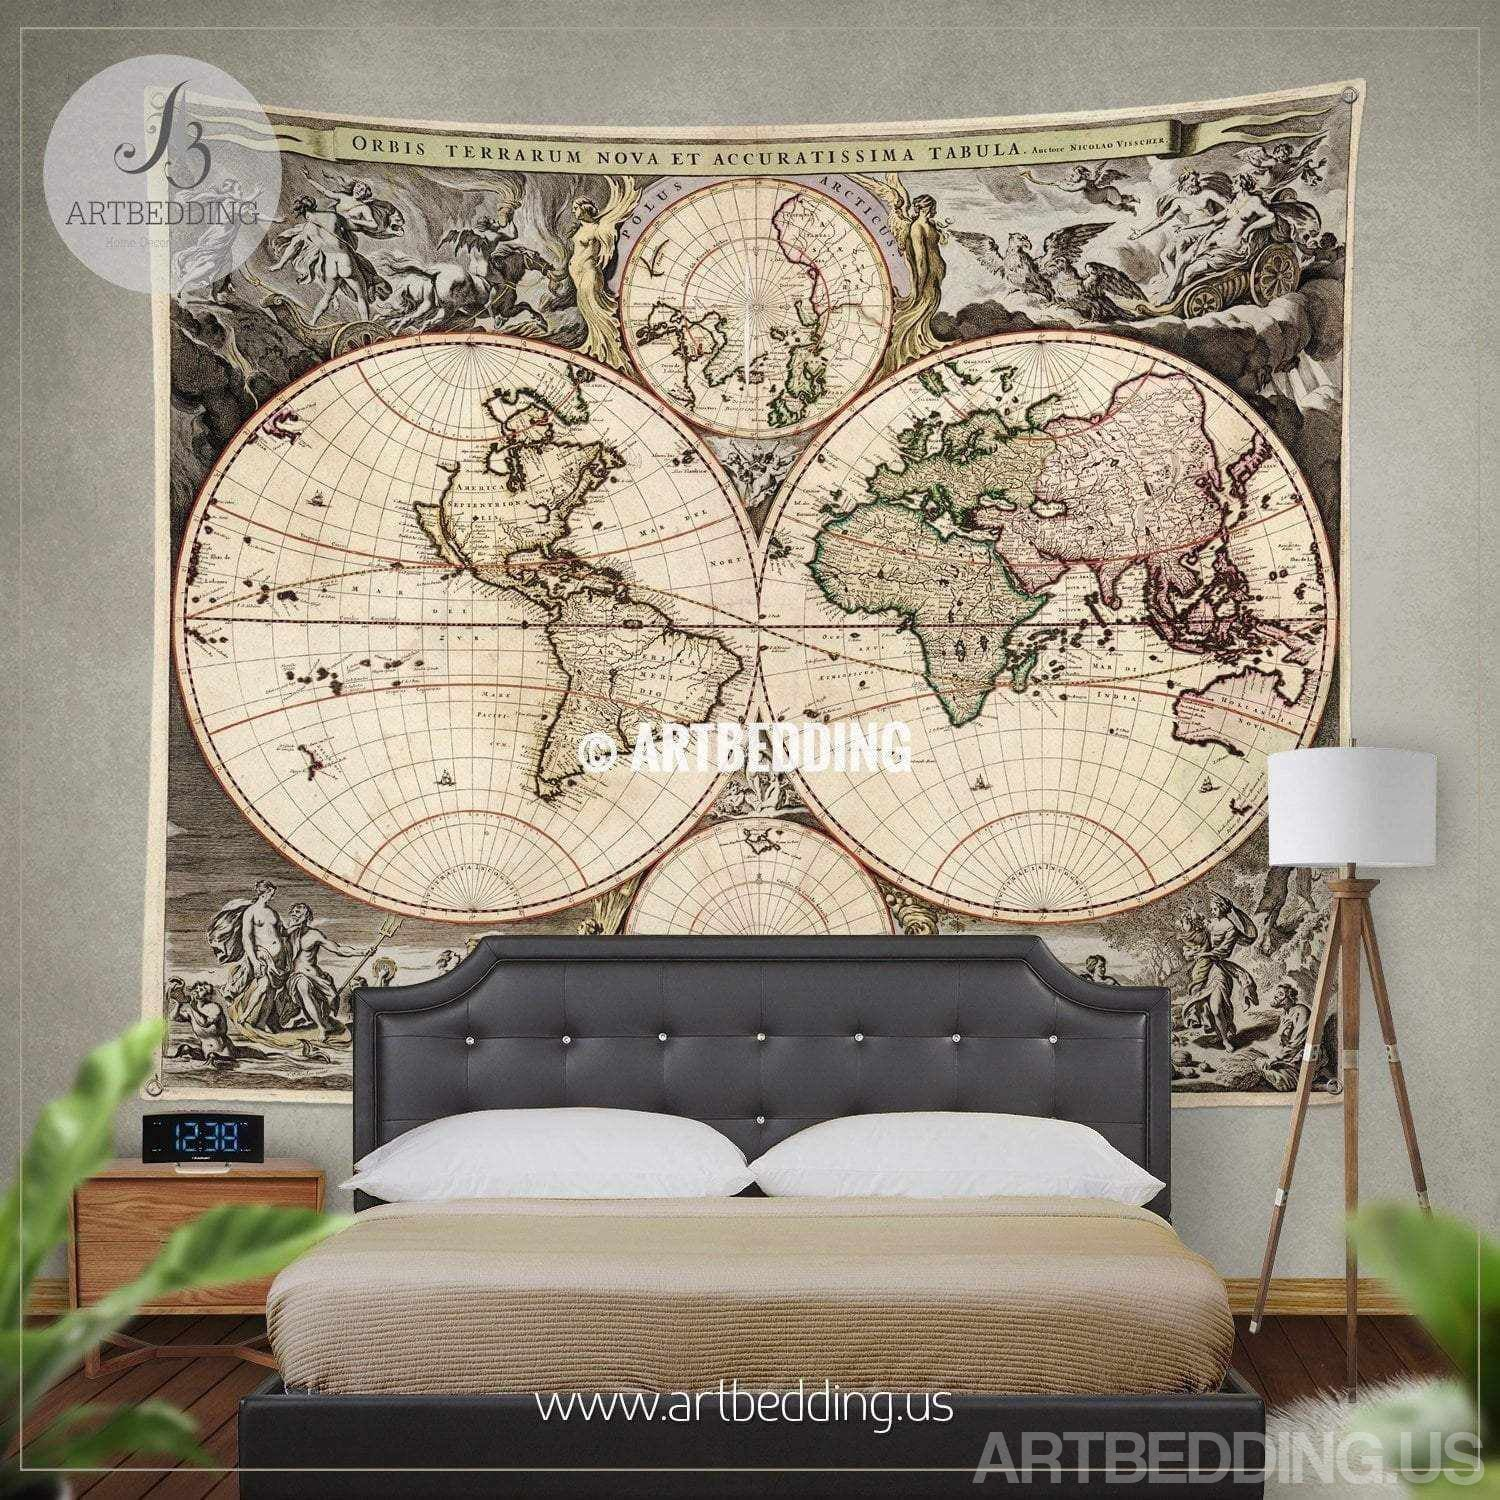 Antique world map wall tapestry vintage world map wall hanging antique world map wall tapestry vintage world map wall hanging vintage old map wall gumiabroncs Gallery